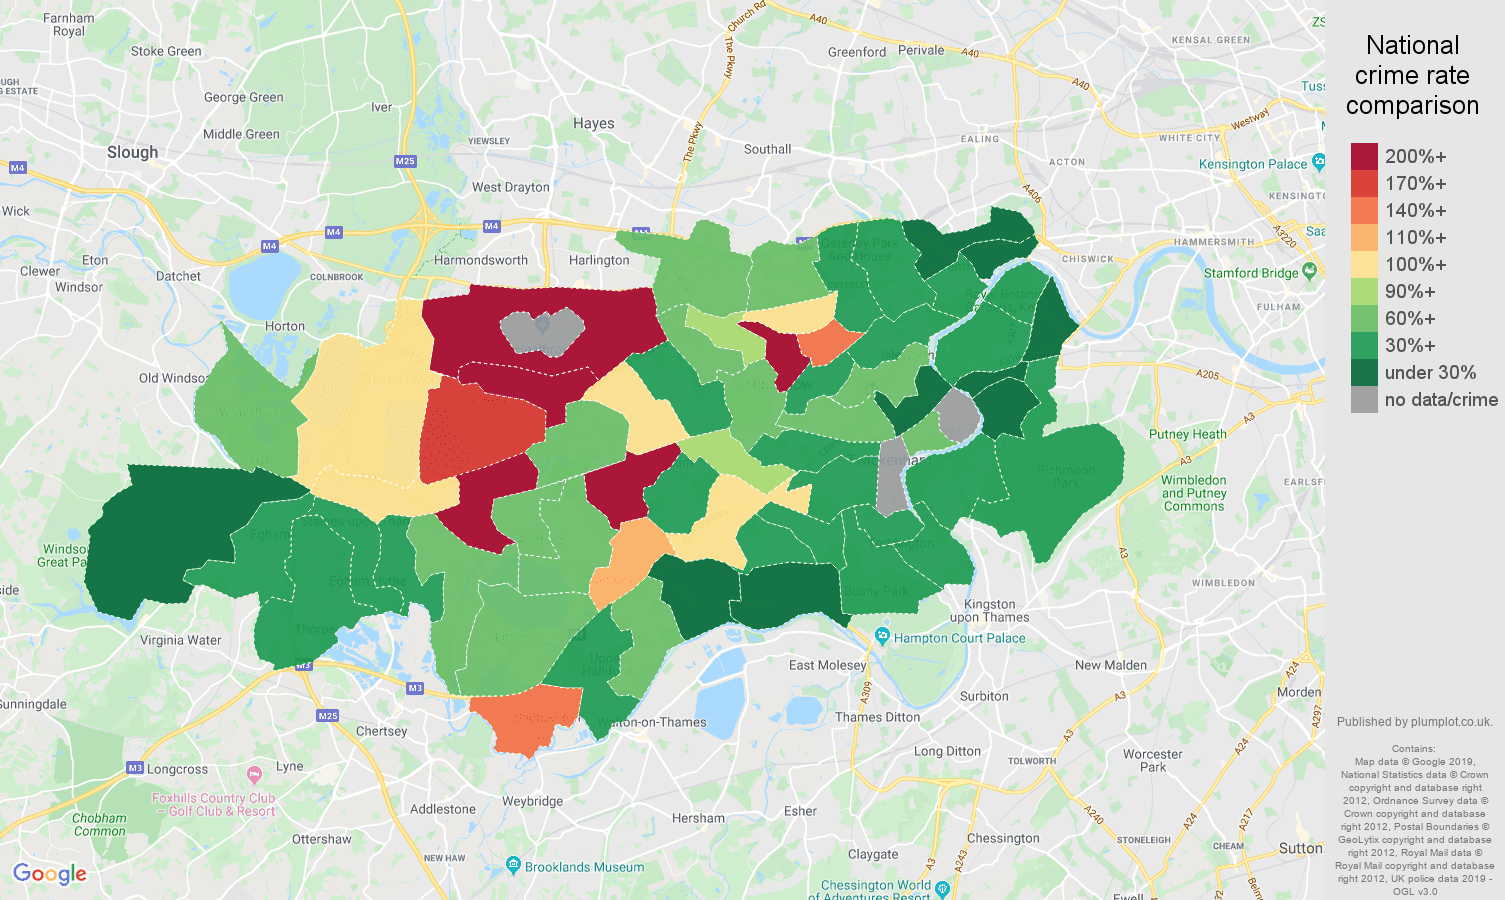 Twickenham other crime rate comparison map